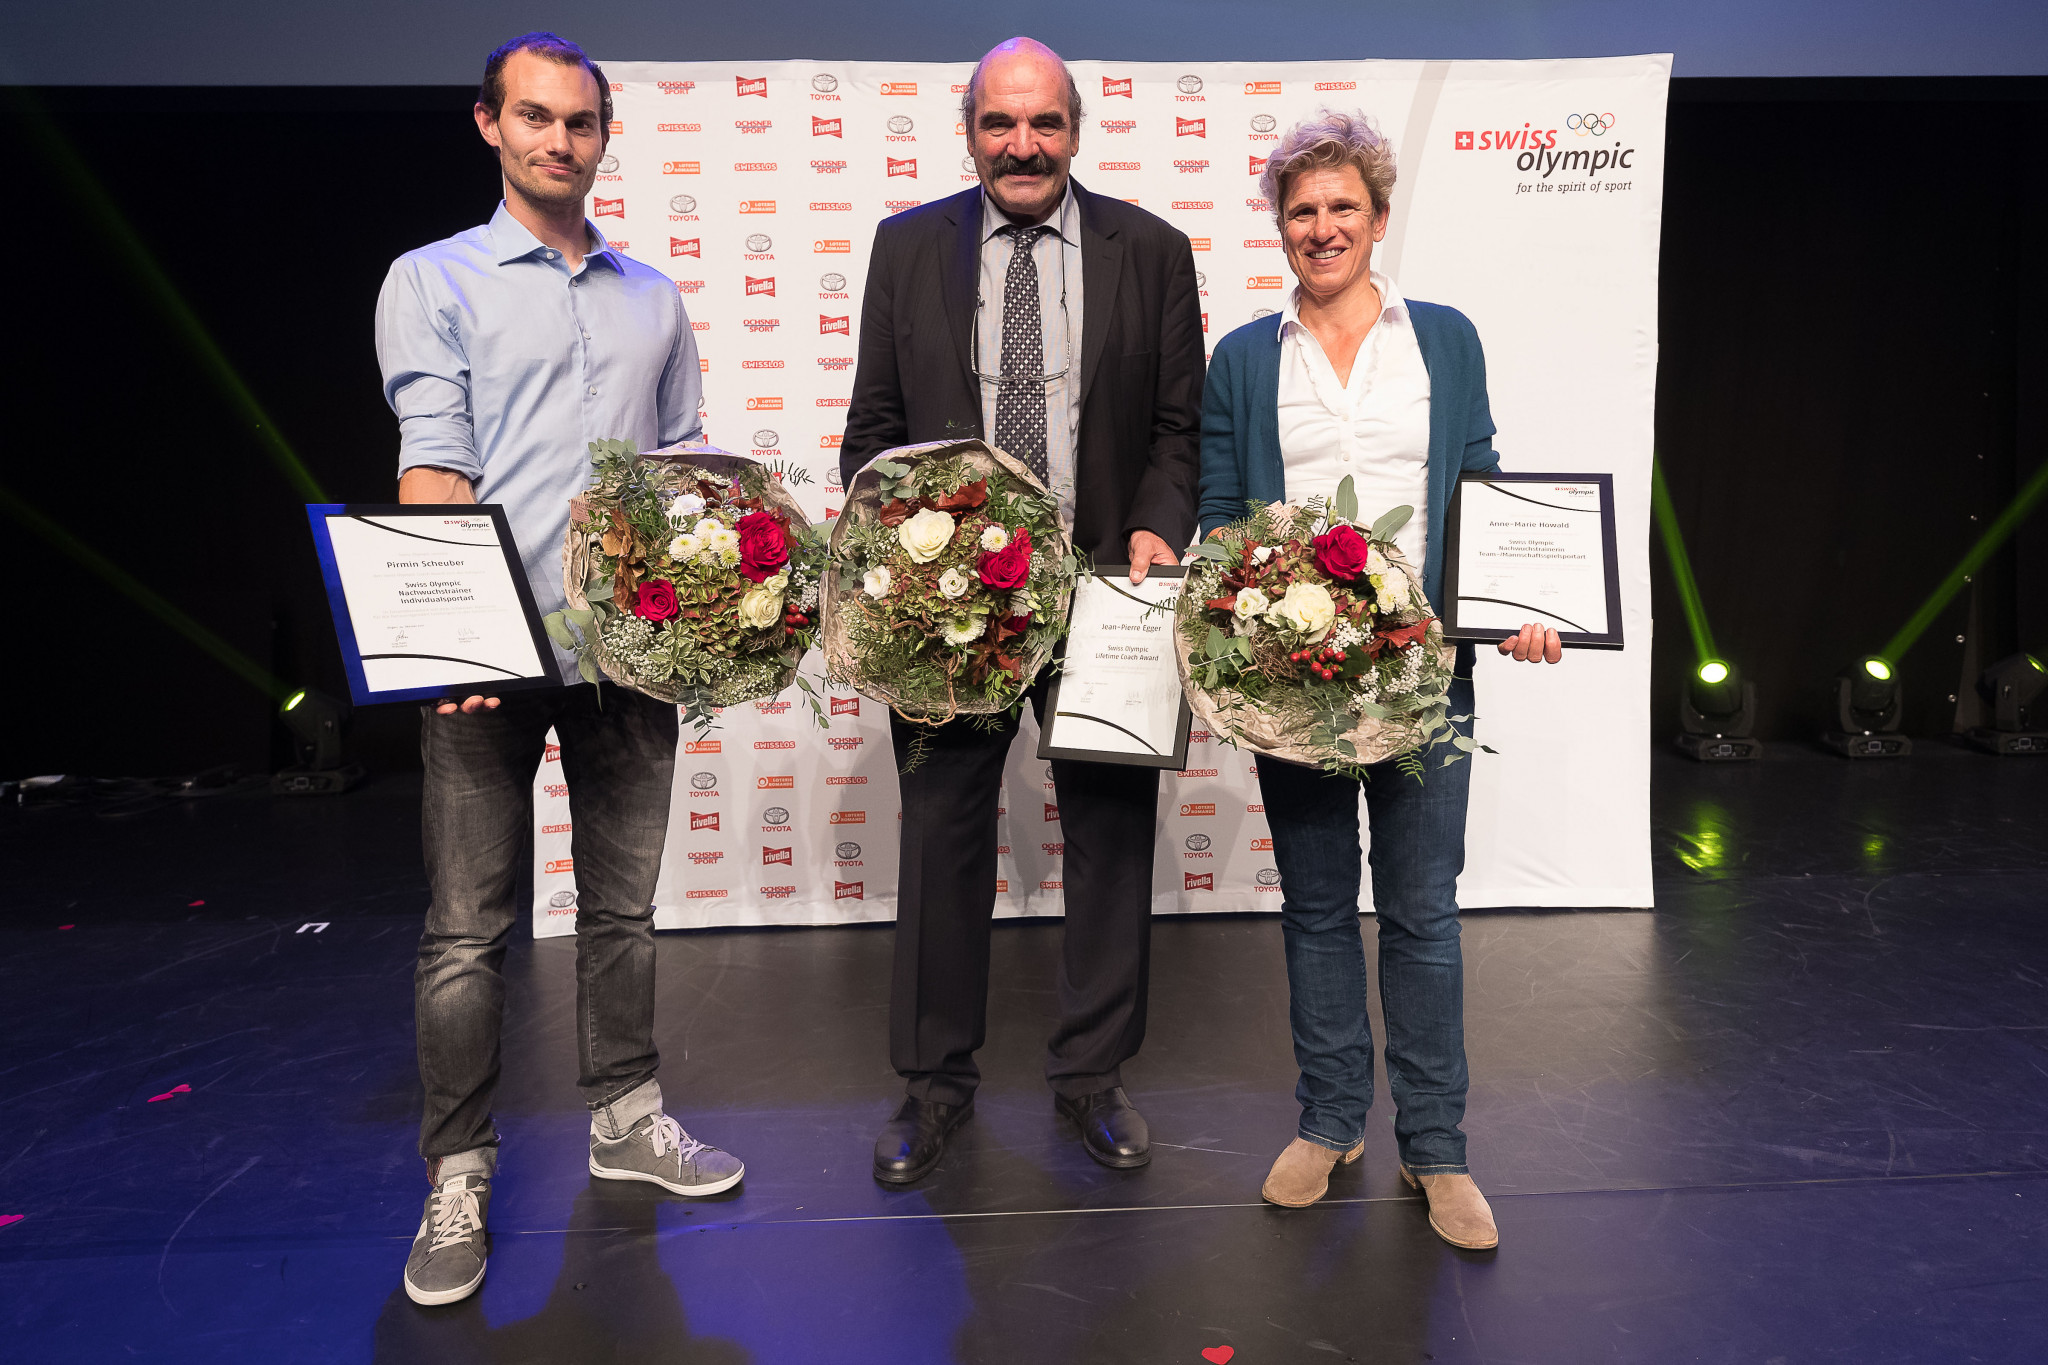 Swiss Olympic honours achievements of coaches at annual awards ceremony